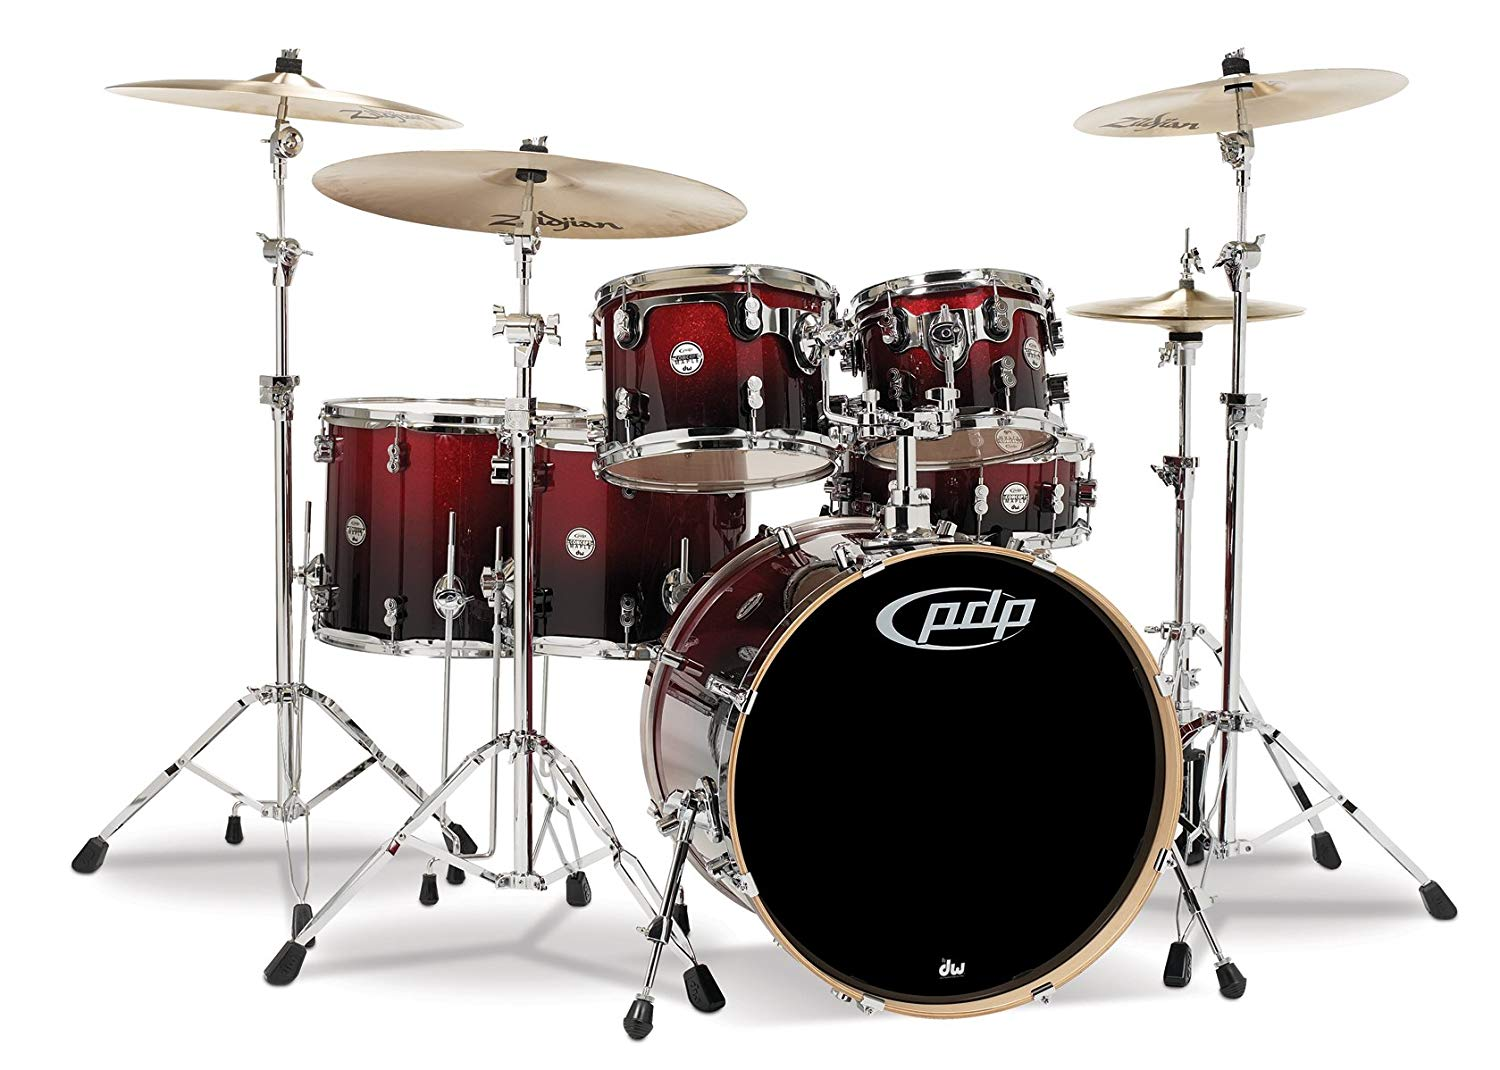 Pacific Drums PDCM2216RB 6-Piece Drumset with Chrome Hardware - Red to Black Fade